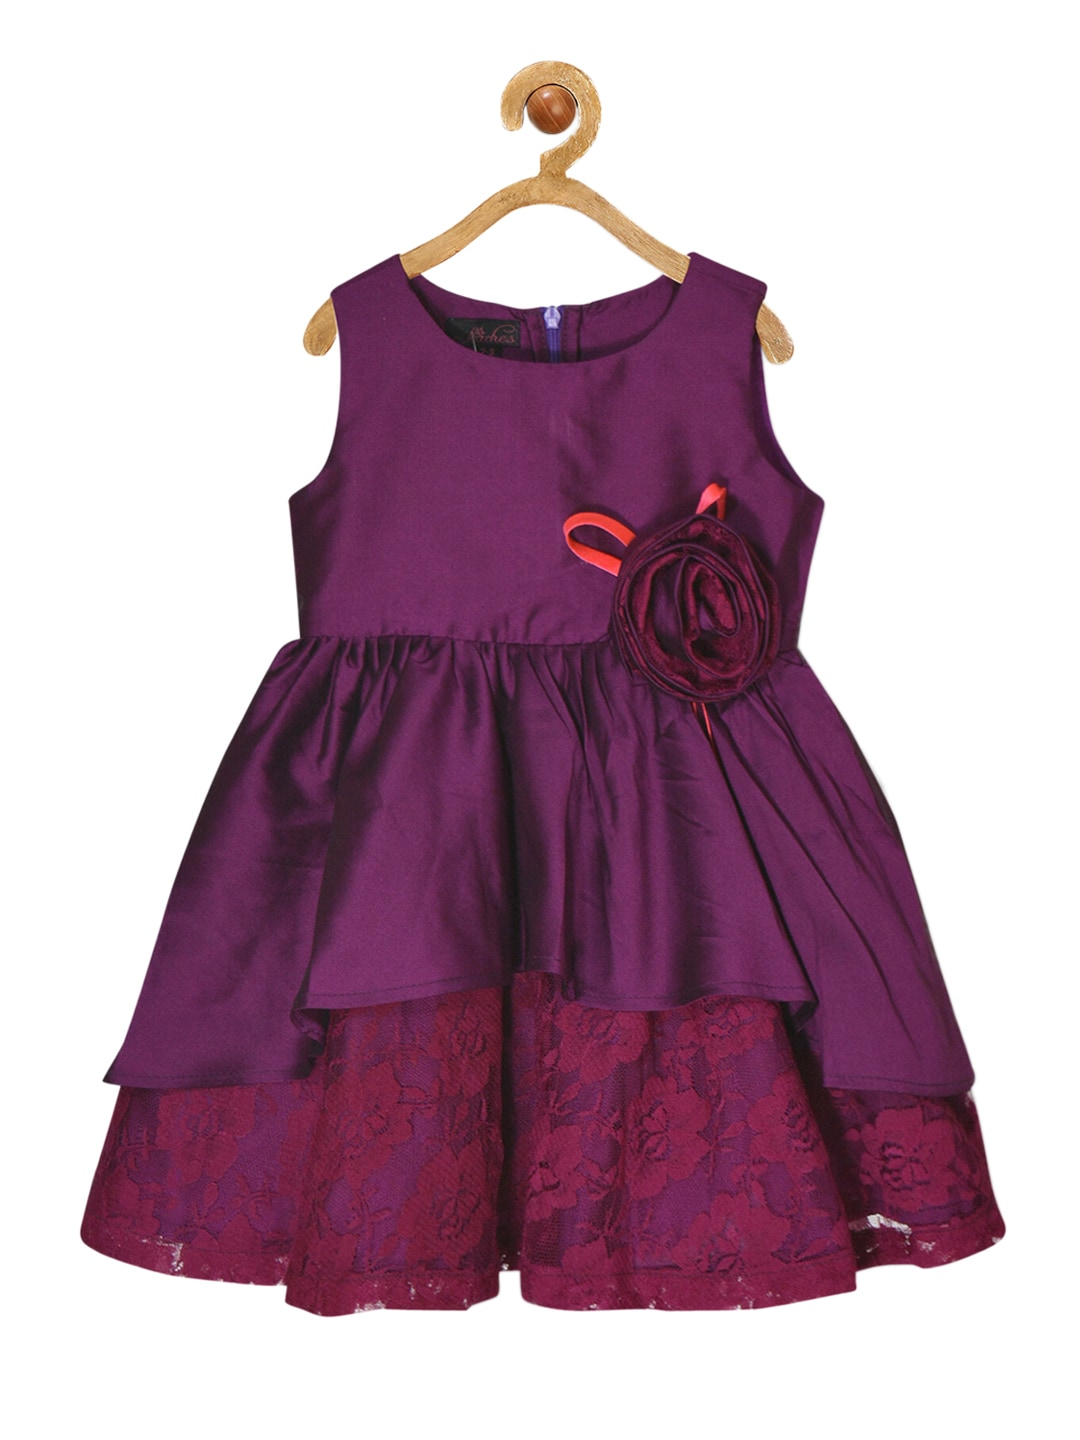 c185d25a9fea Girls Dresses - Buy Frocks   Gowns for Girls Online